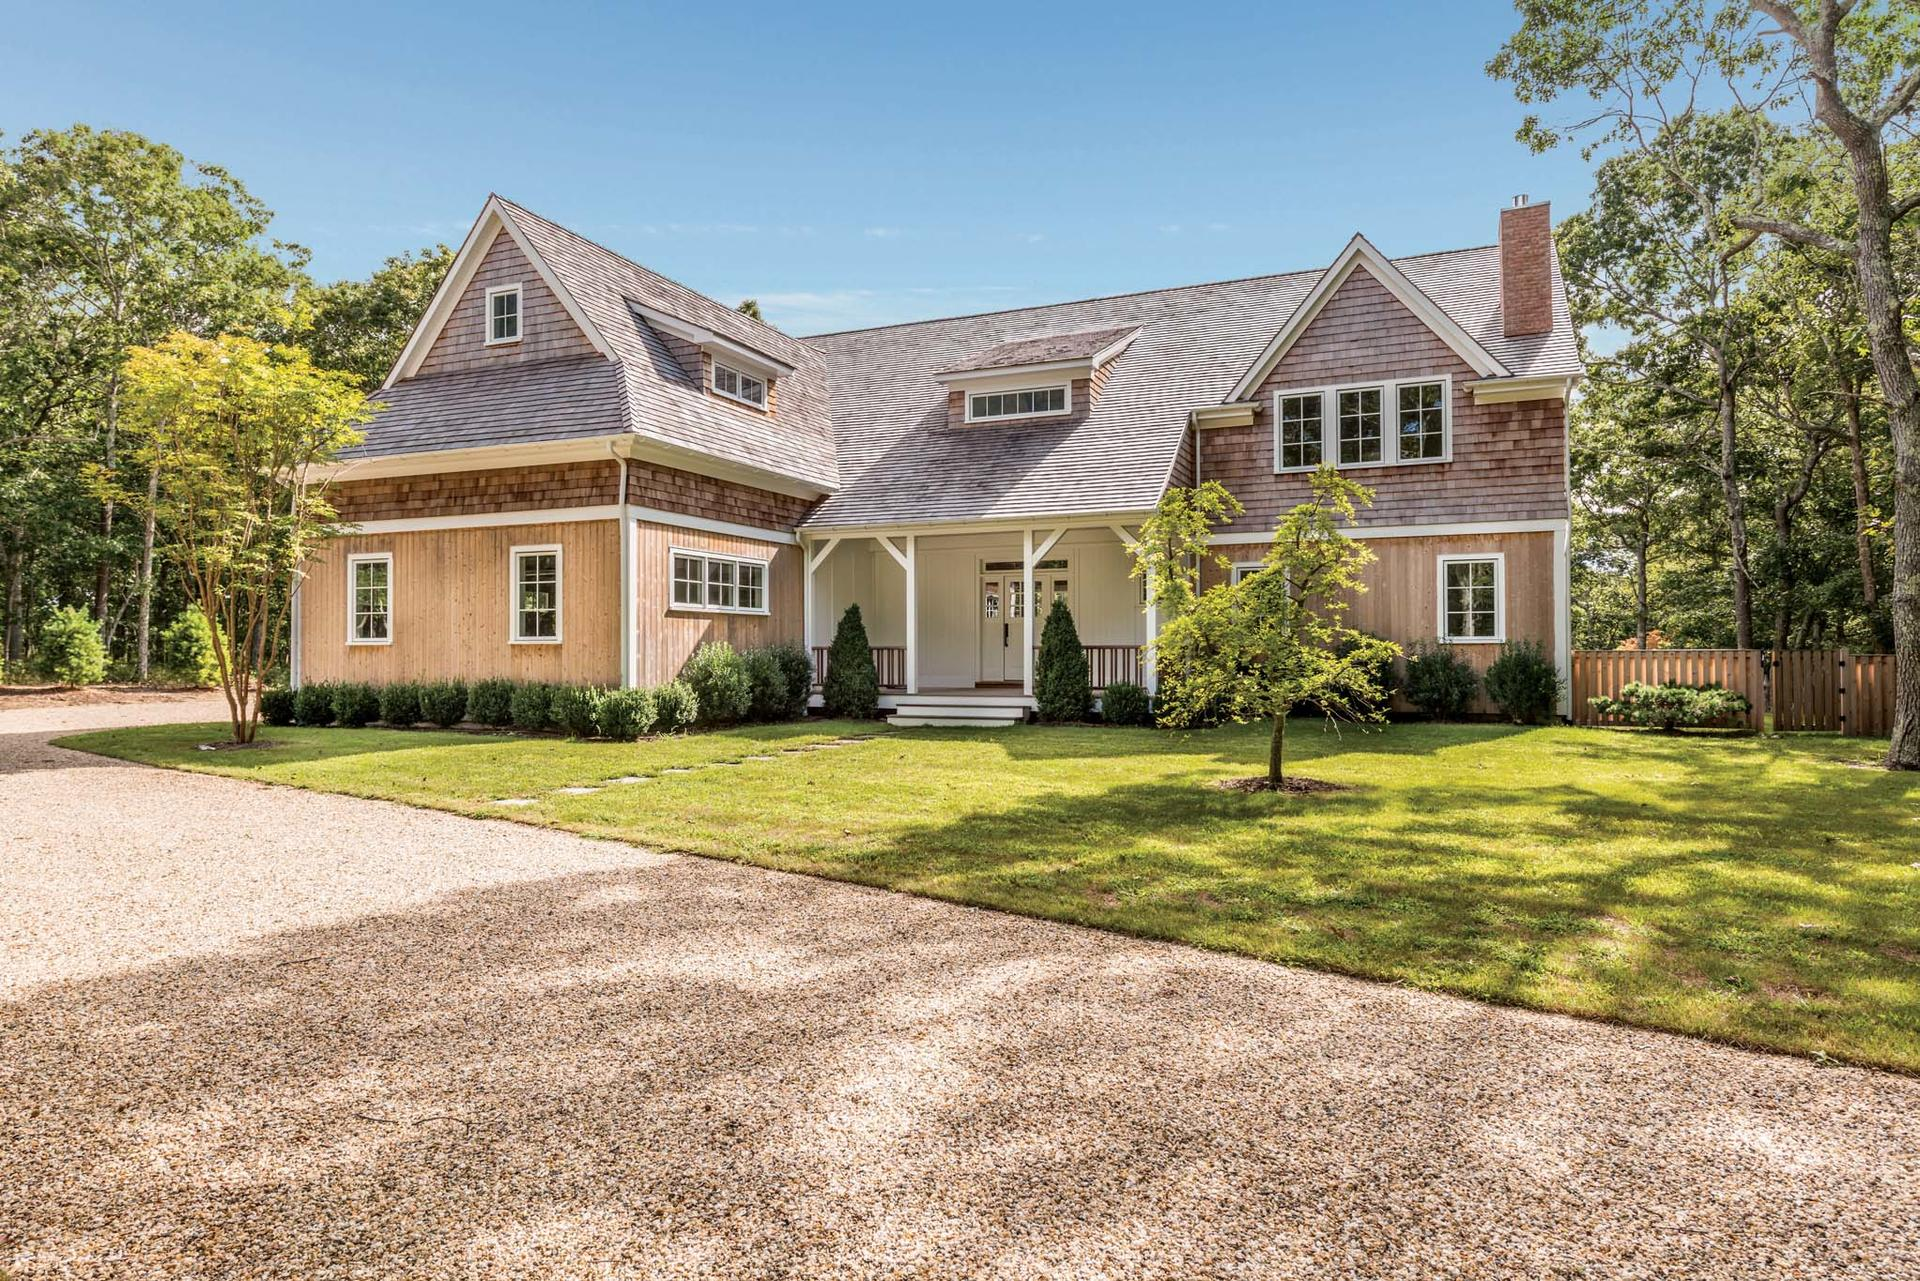 Single Family Home for Sale at Beautiful New Construction On 2.7 Acres 54 Towhee Trail, East Hampton, New York